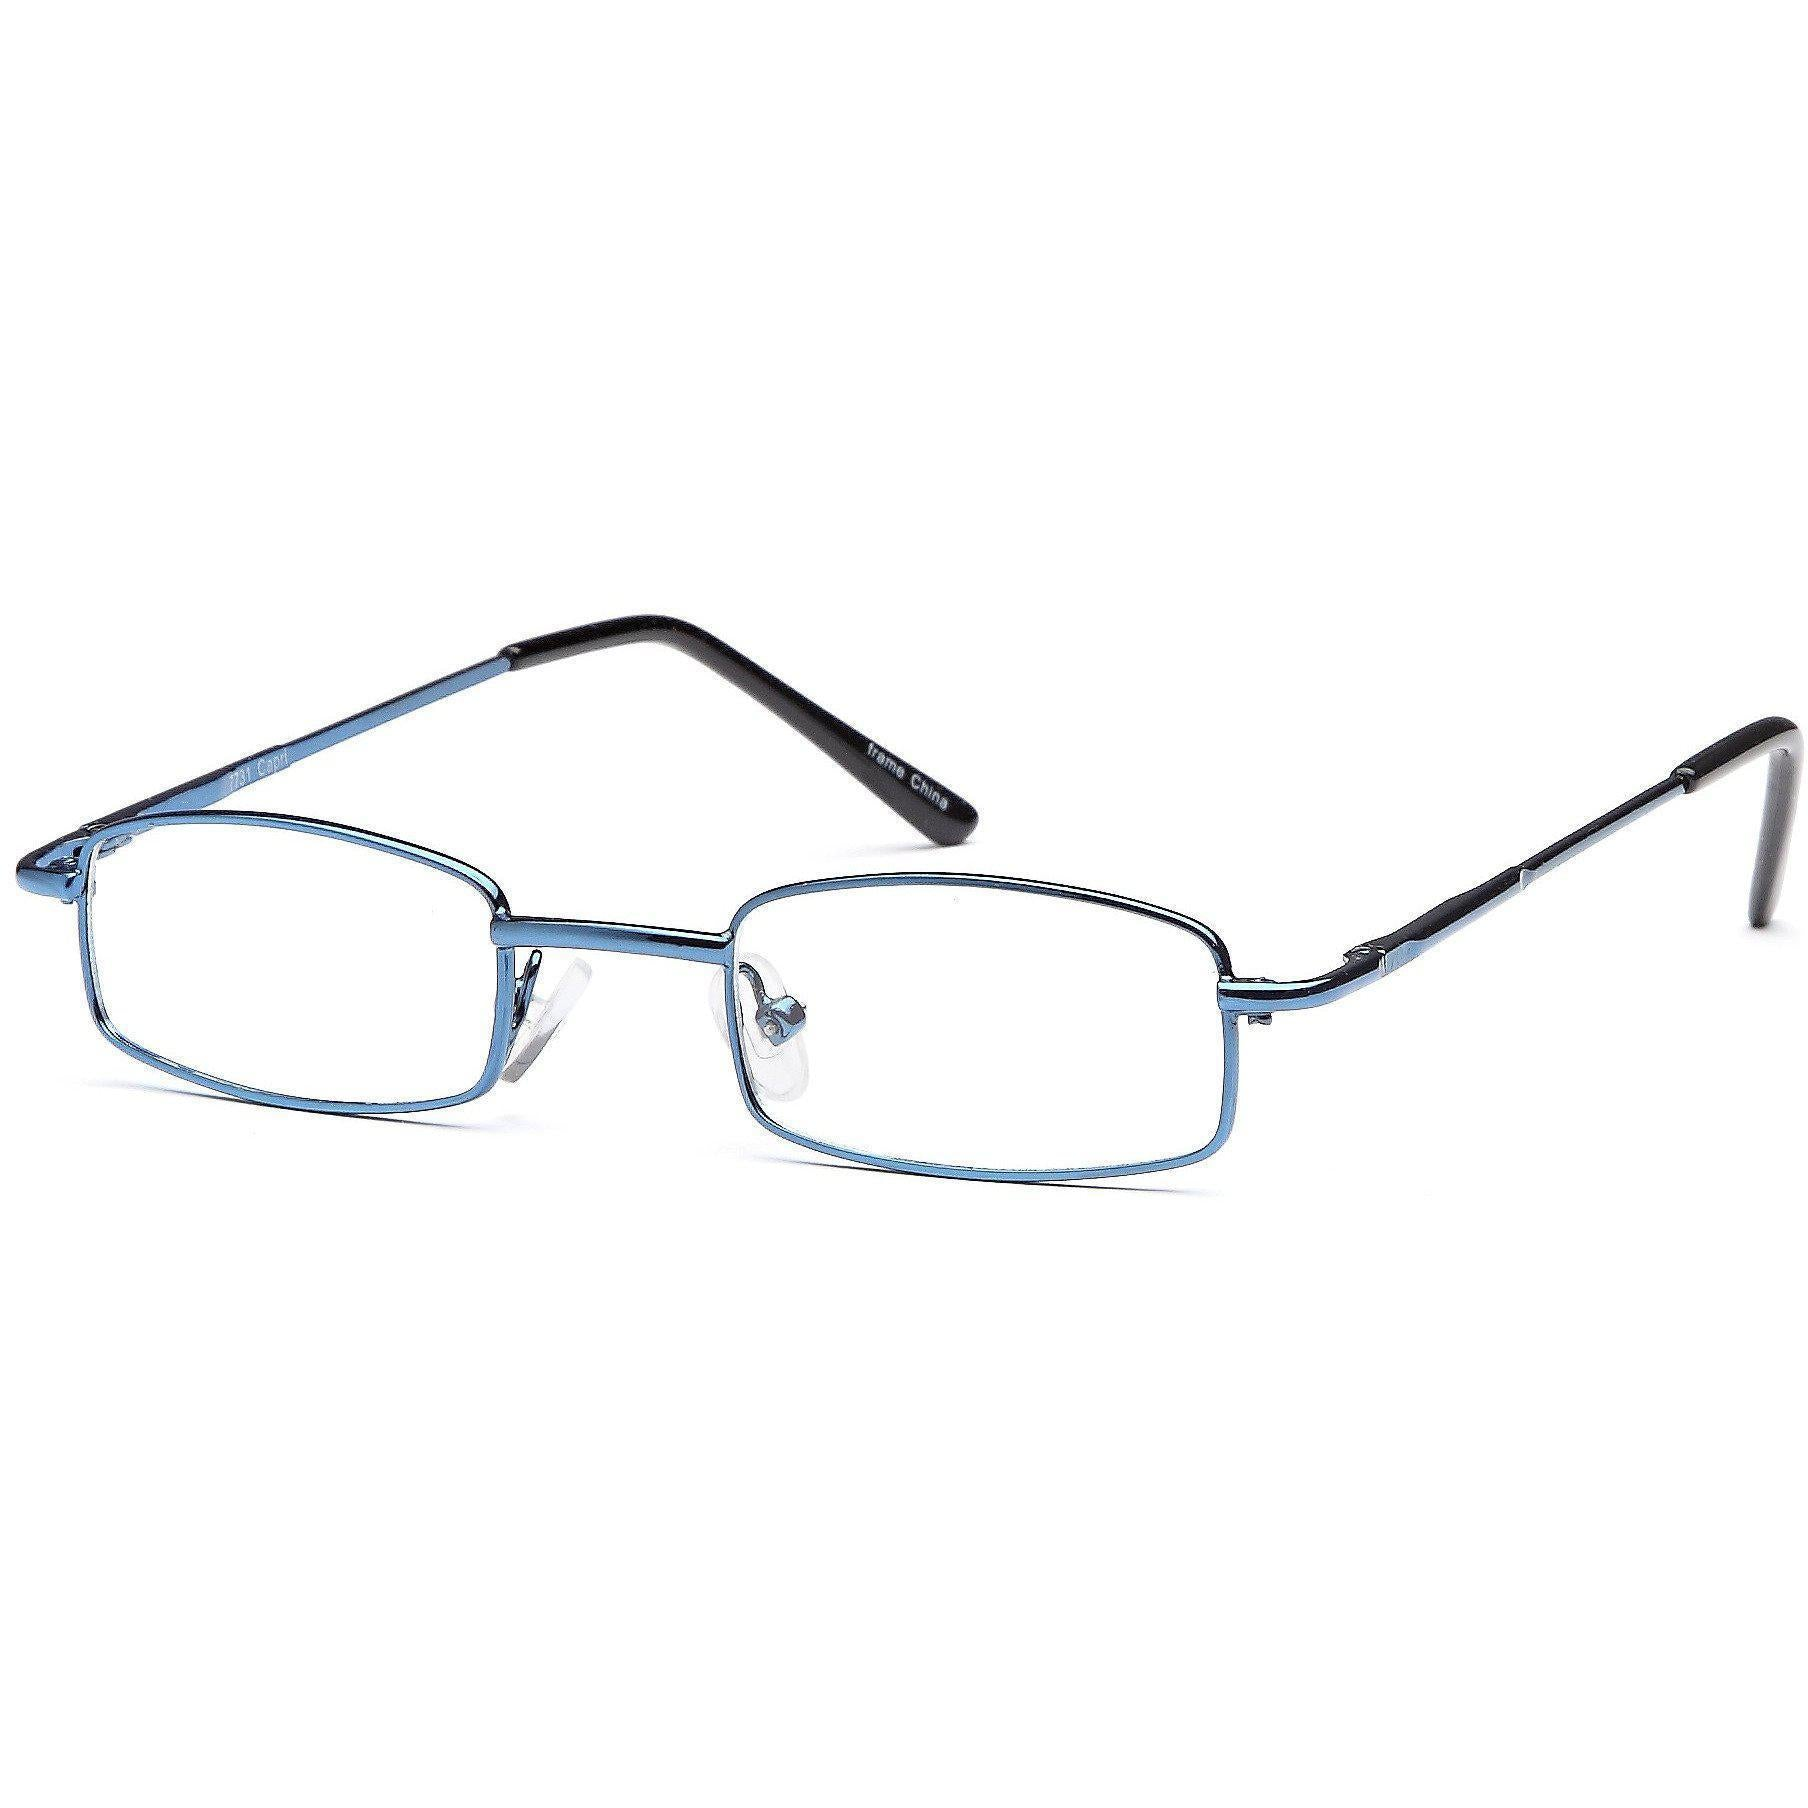 Appletree Prescription Glasses 7731 Eyeglasses Frame